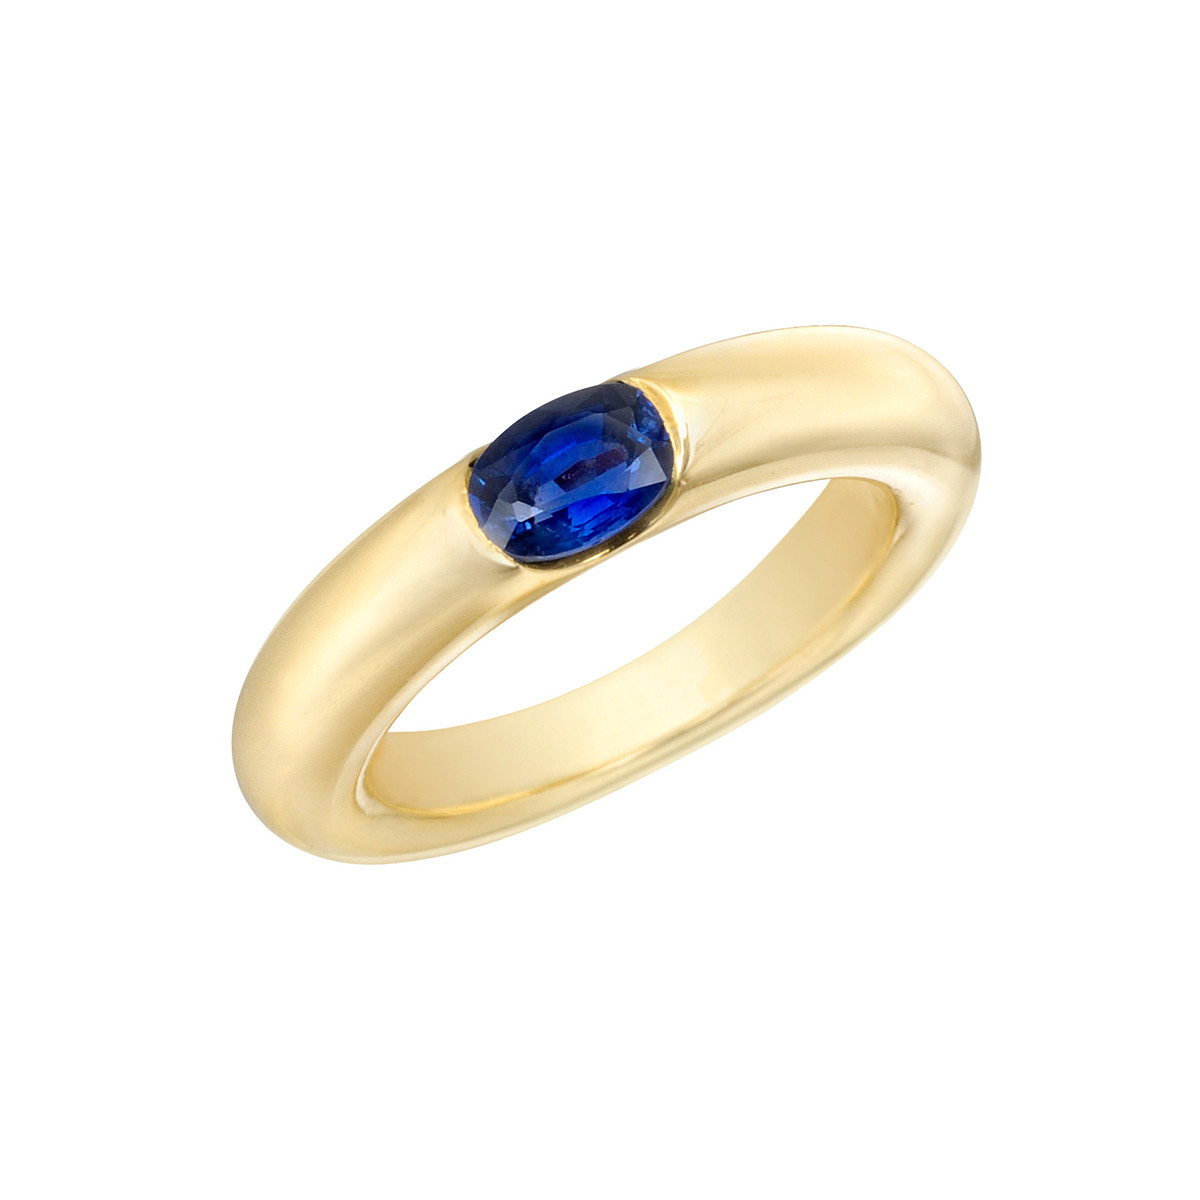 18k Yellow Gold & Sapphire Gypsy Ring